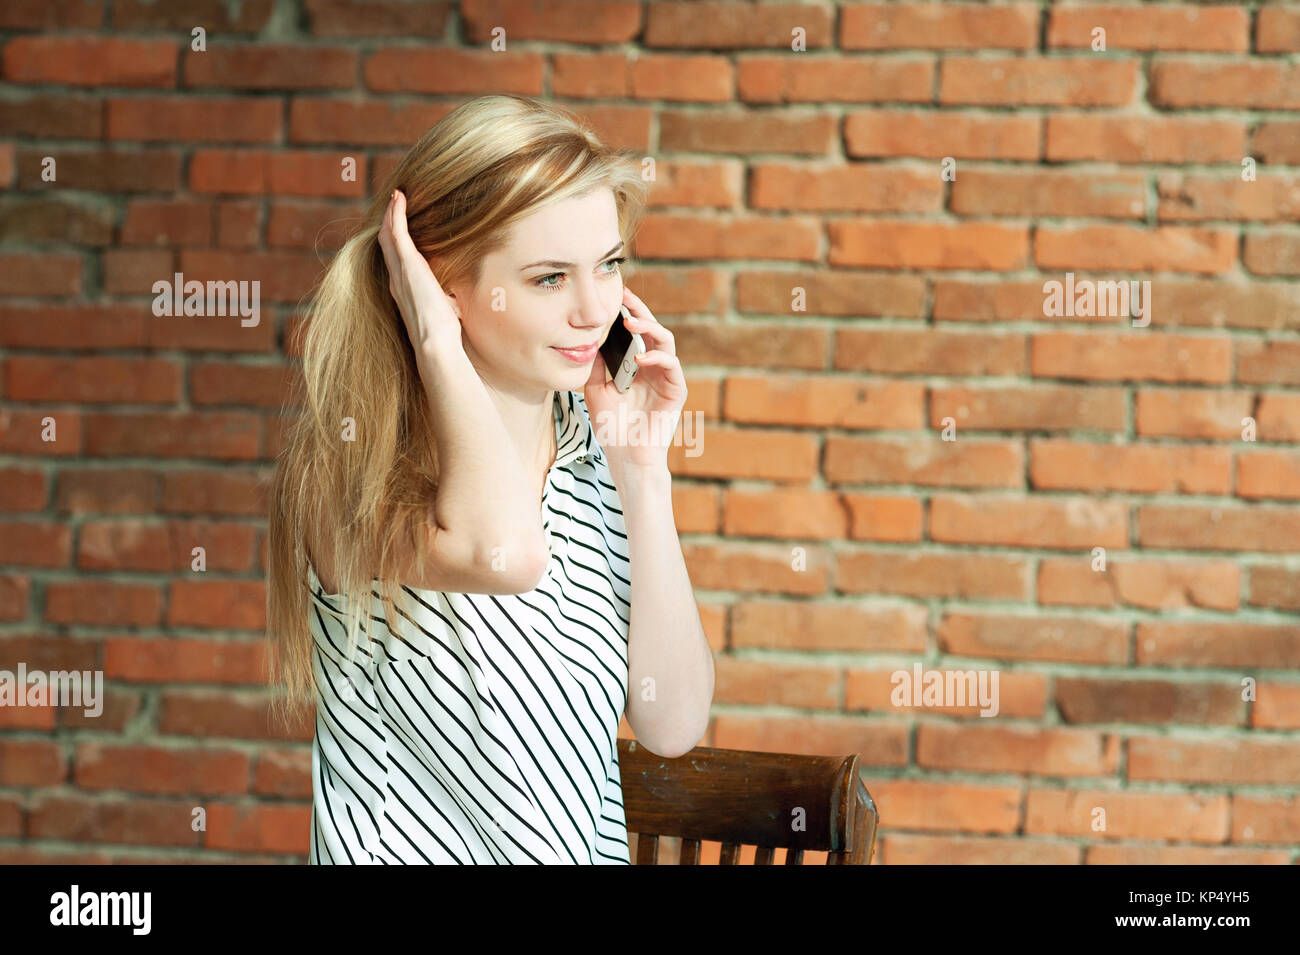 A blonde girl is calling by the phone against a brick wall background, calling the apartment repair service. Advertising Stock Photo